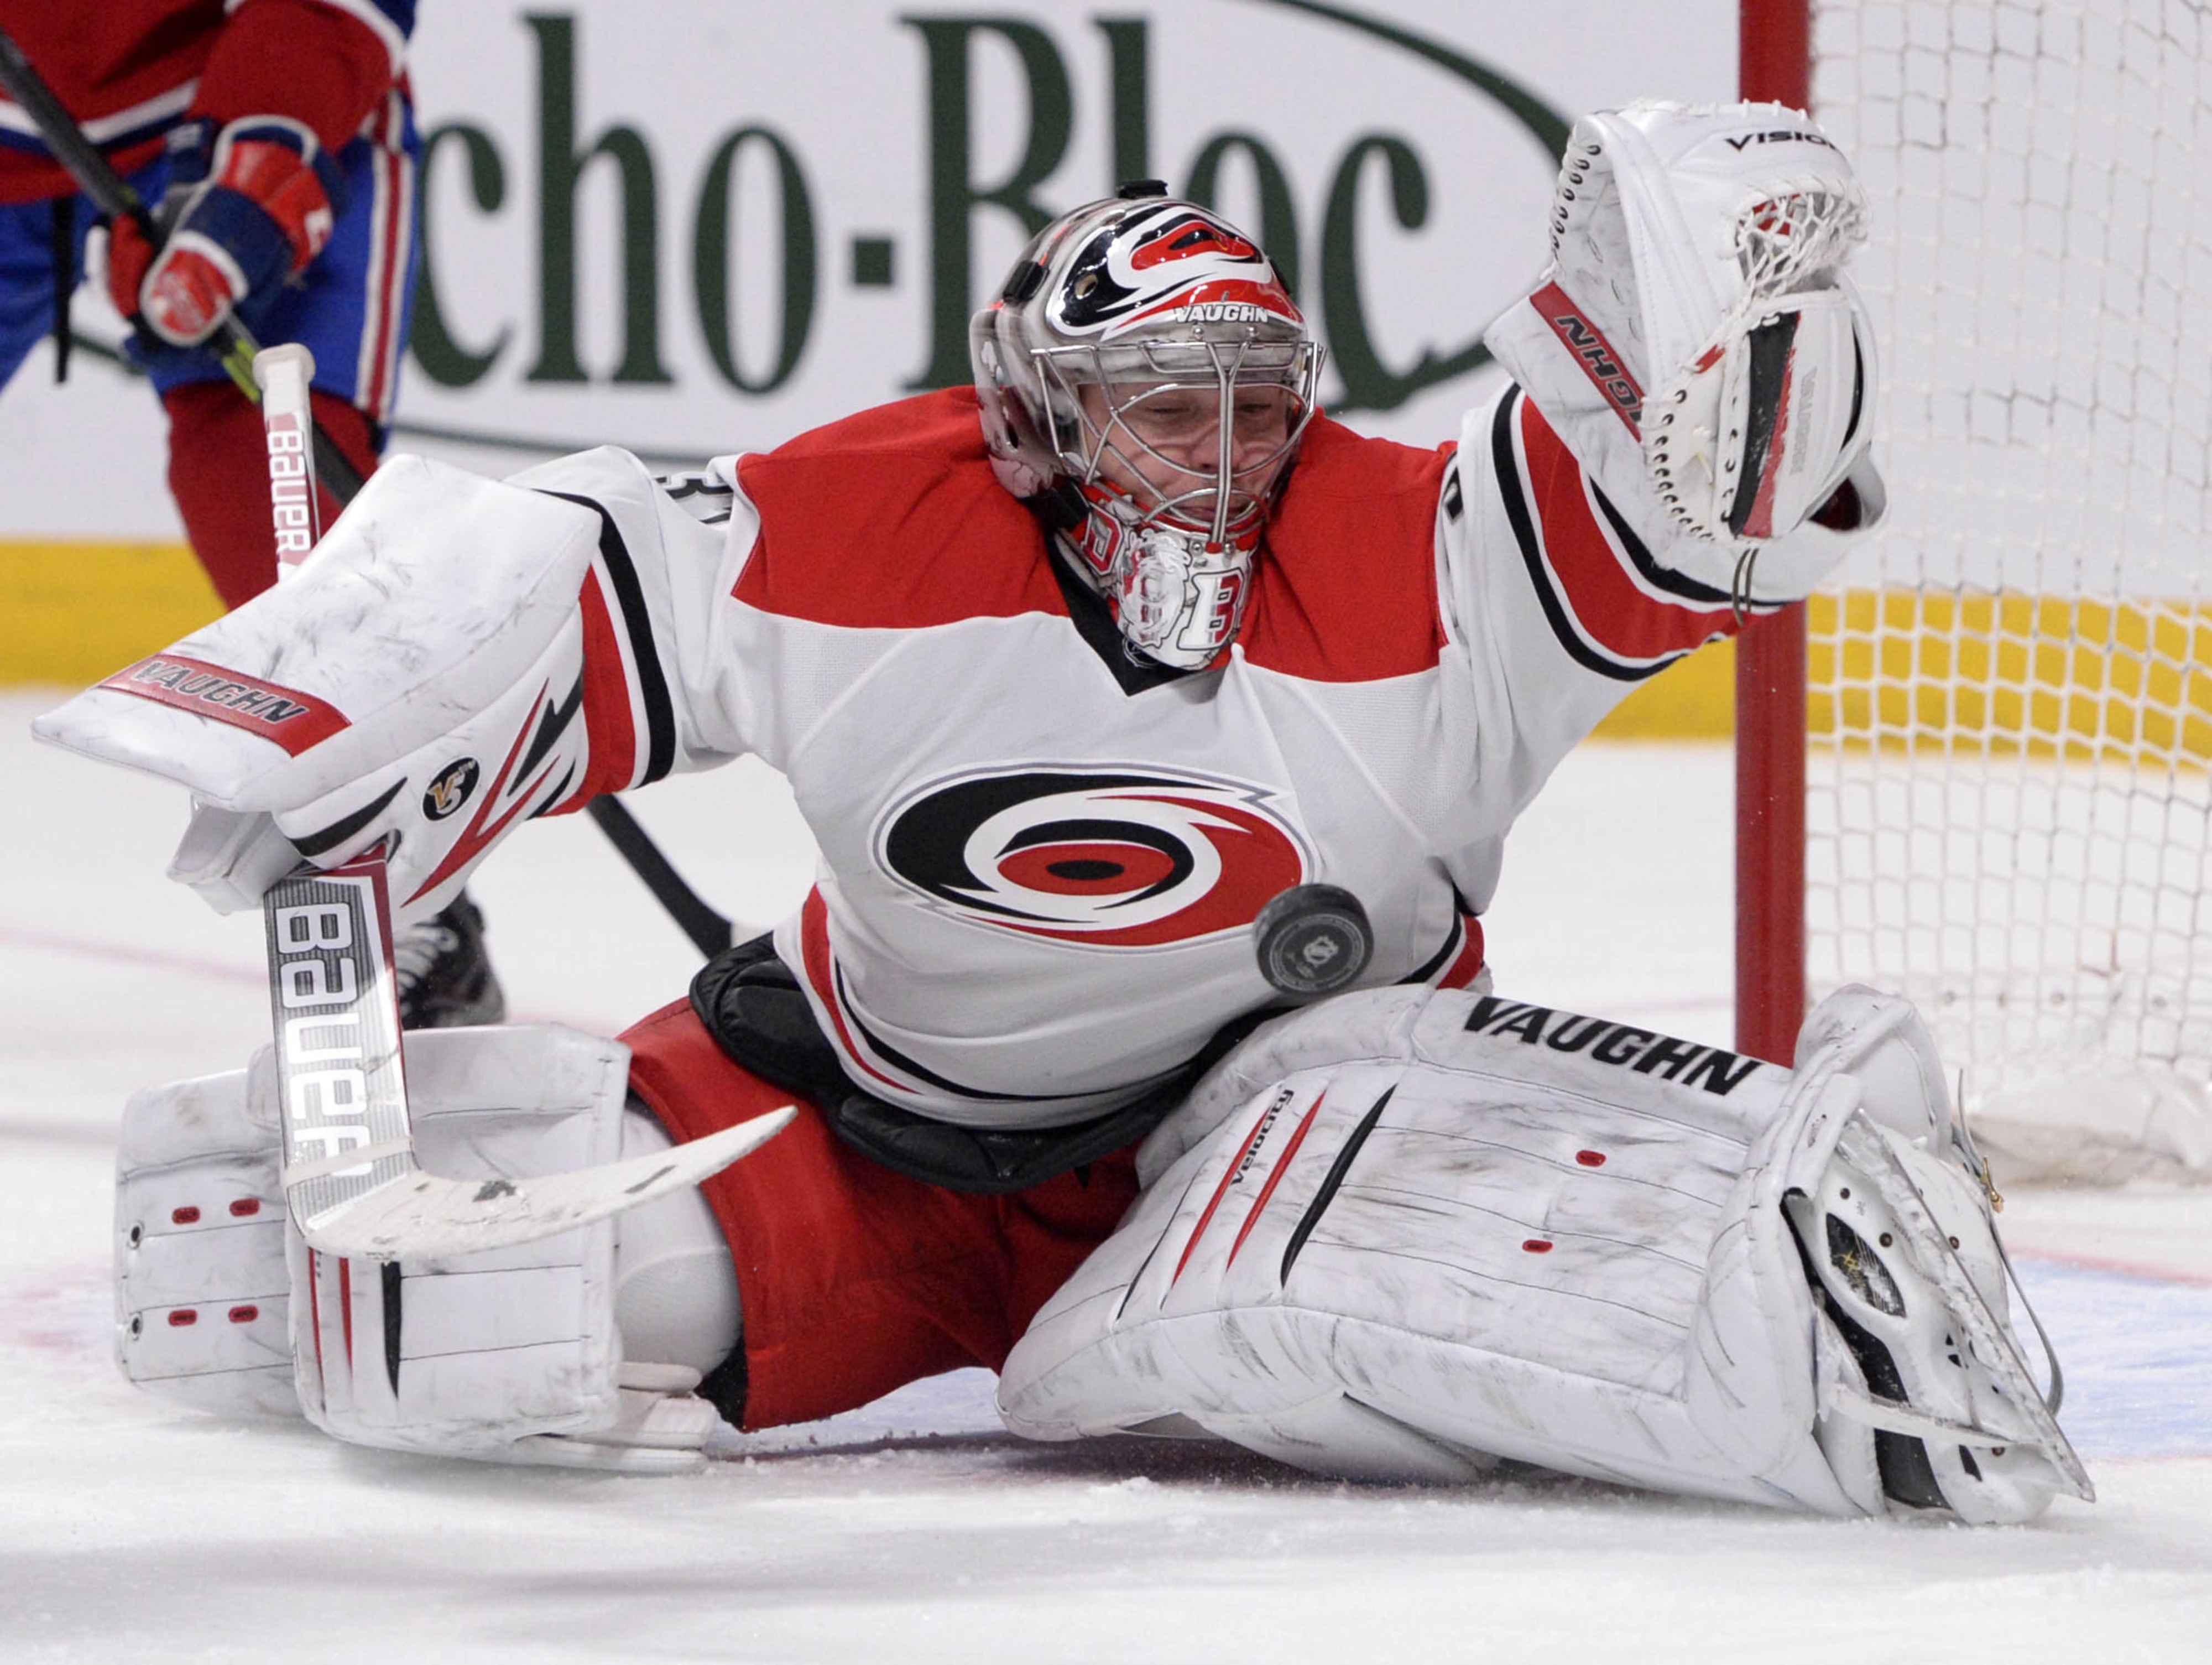 Khudobin may have been the steal of the draft - Photo Credit